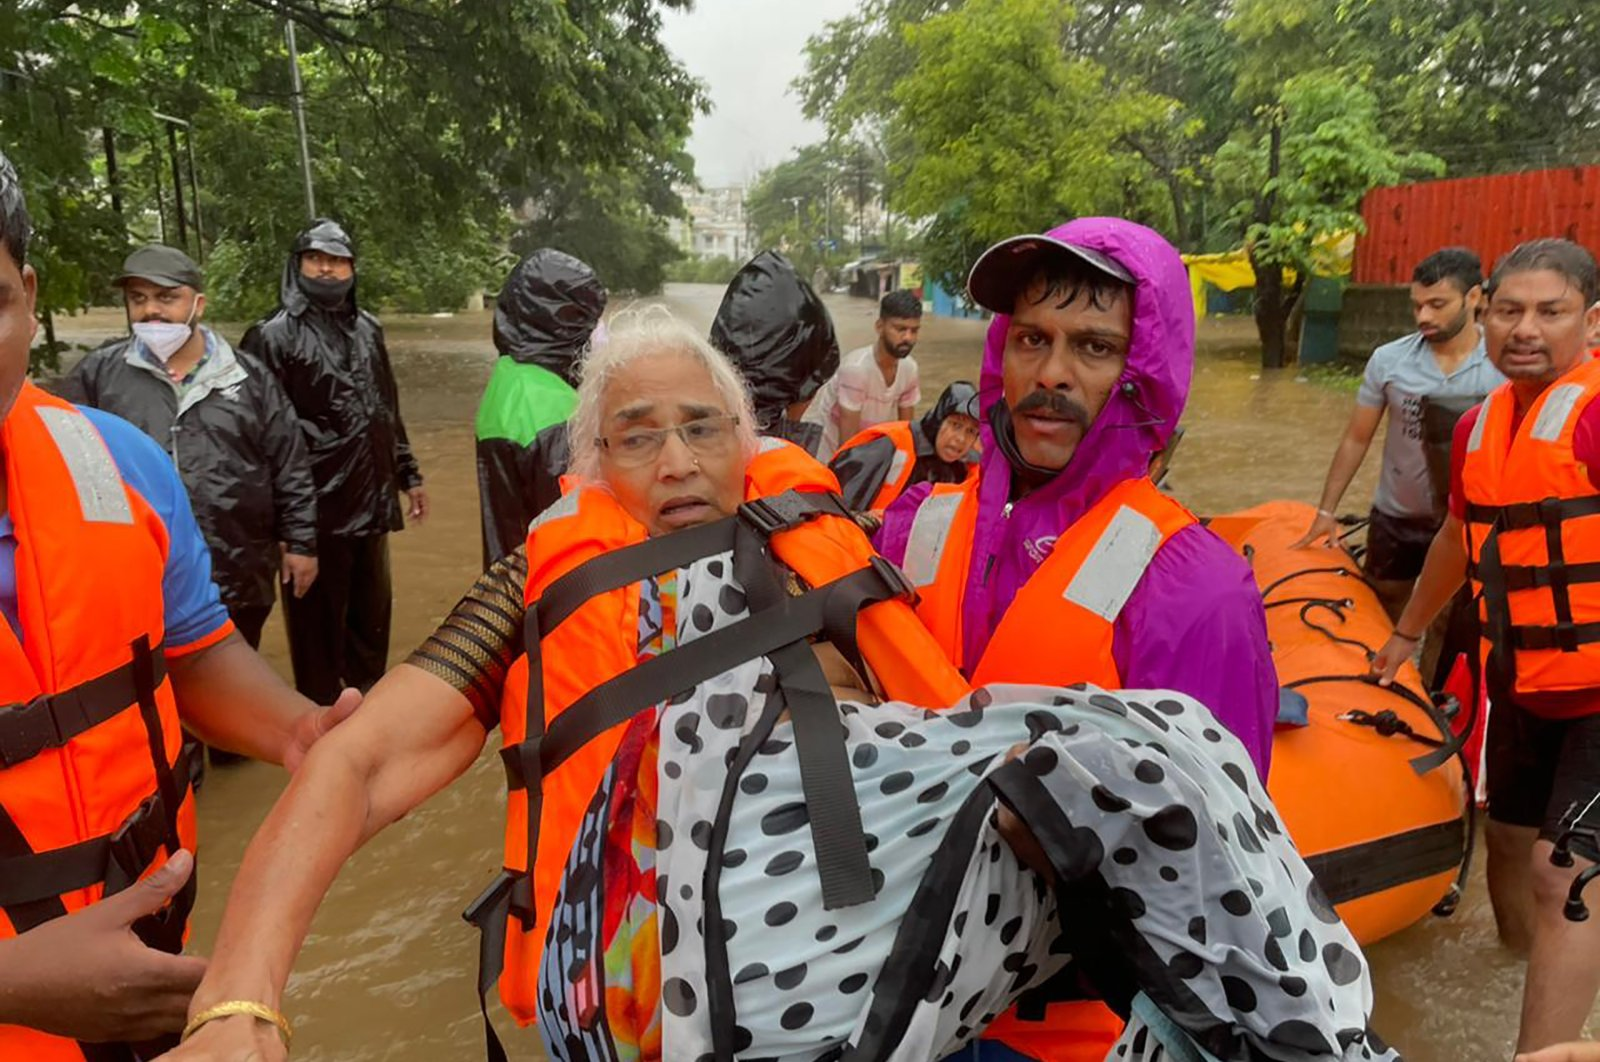 A National Disaster Response Force personnel rescues an elderly woman stranded in floodwaters in Kolhapur, India, July 23, 2021. (AP Photo)